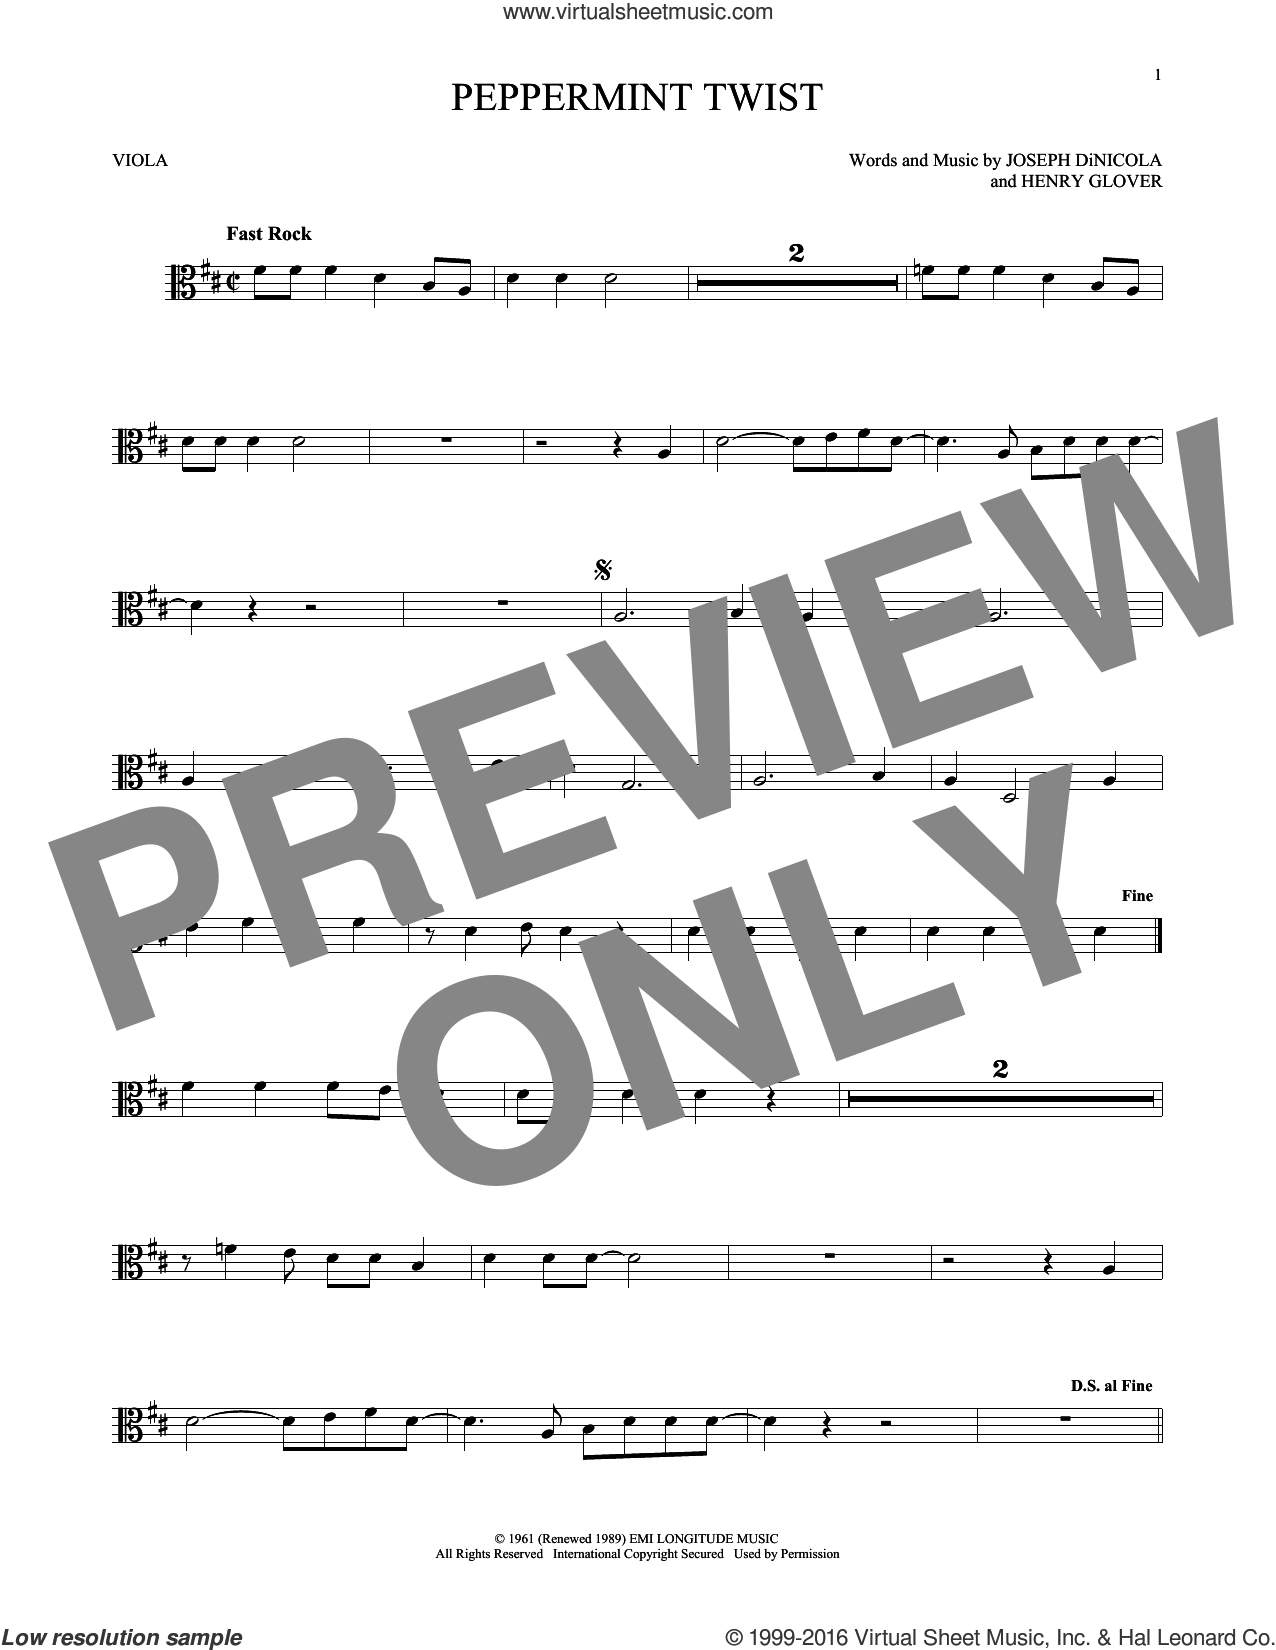 Peppermint Twist sheet music for viola solo by Joey Dee & The Starliters, Henry Glover and Joseph DiNicola, intermediate skill level